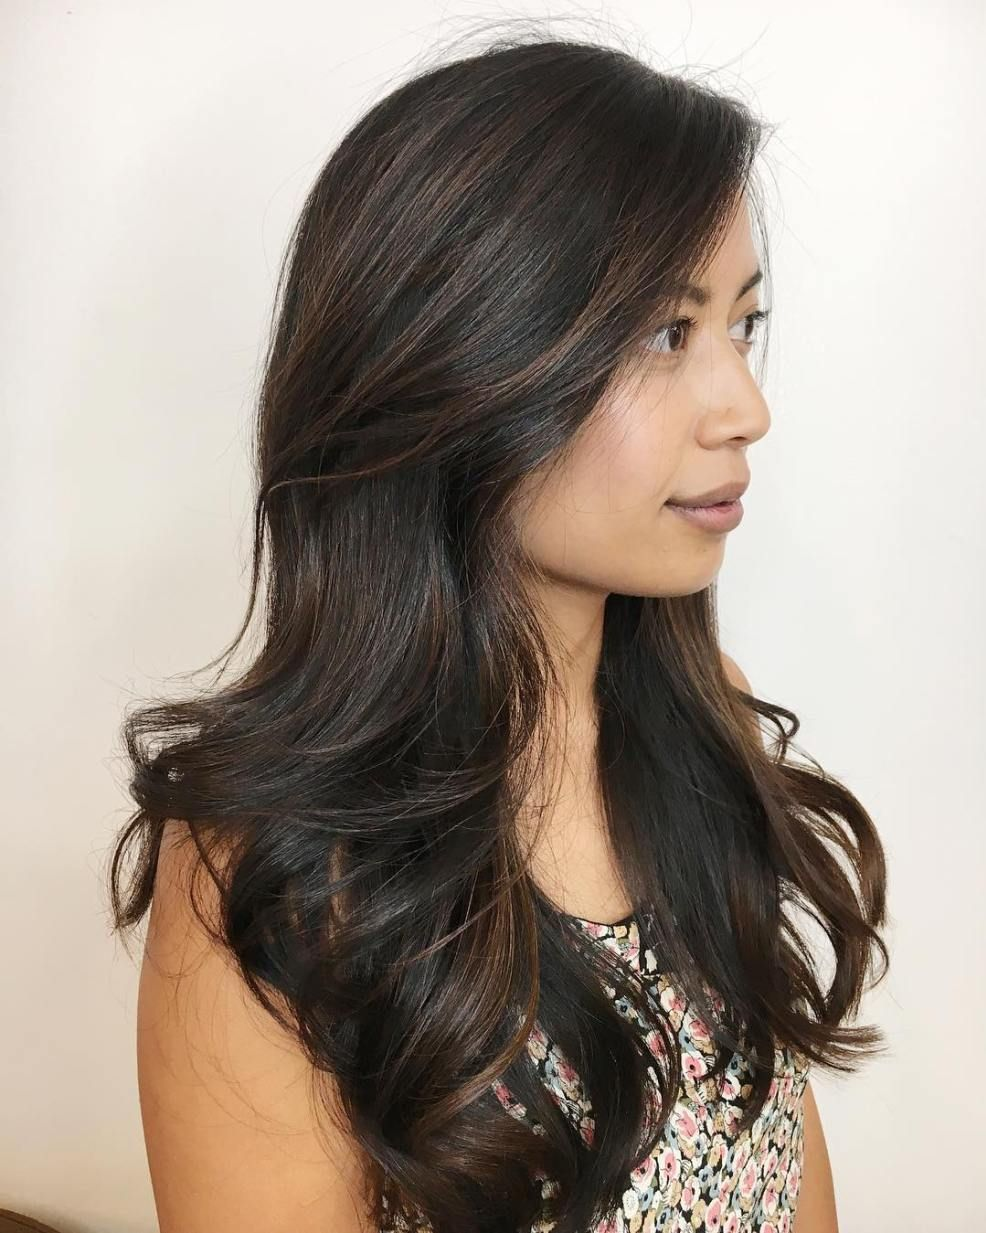 Watch 20 Jaw-Dropping Long Hairstyles for Round Faces video